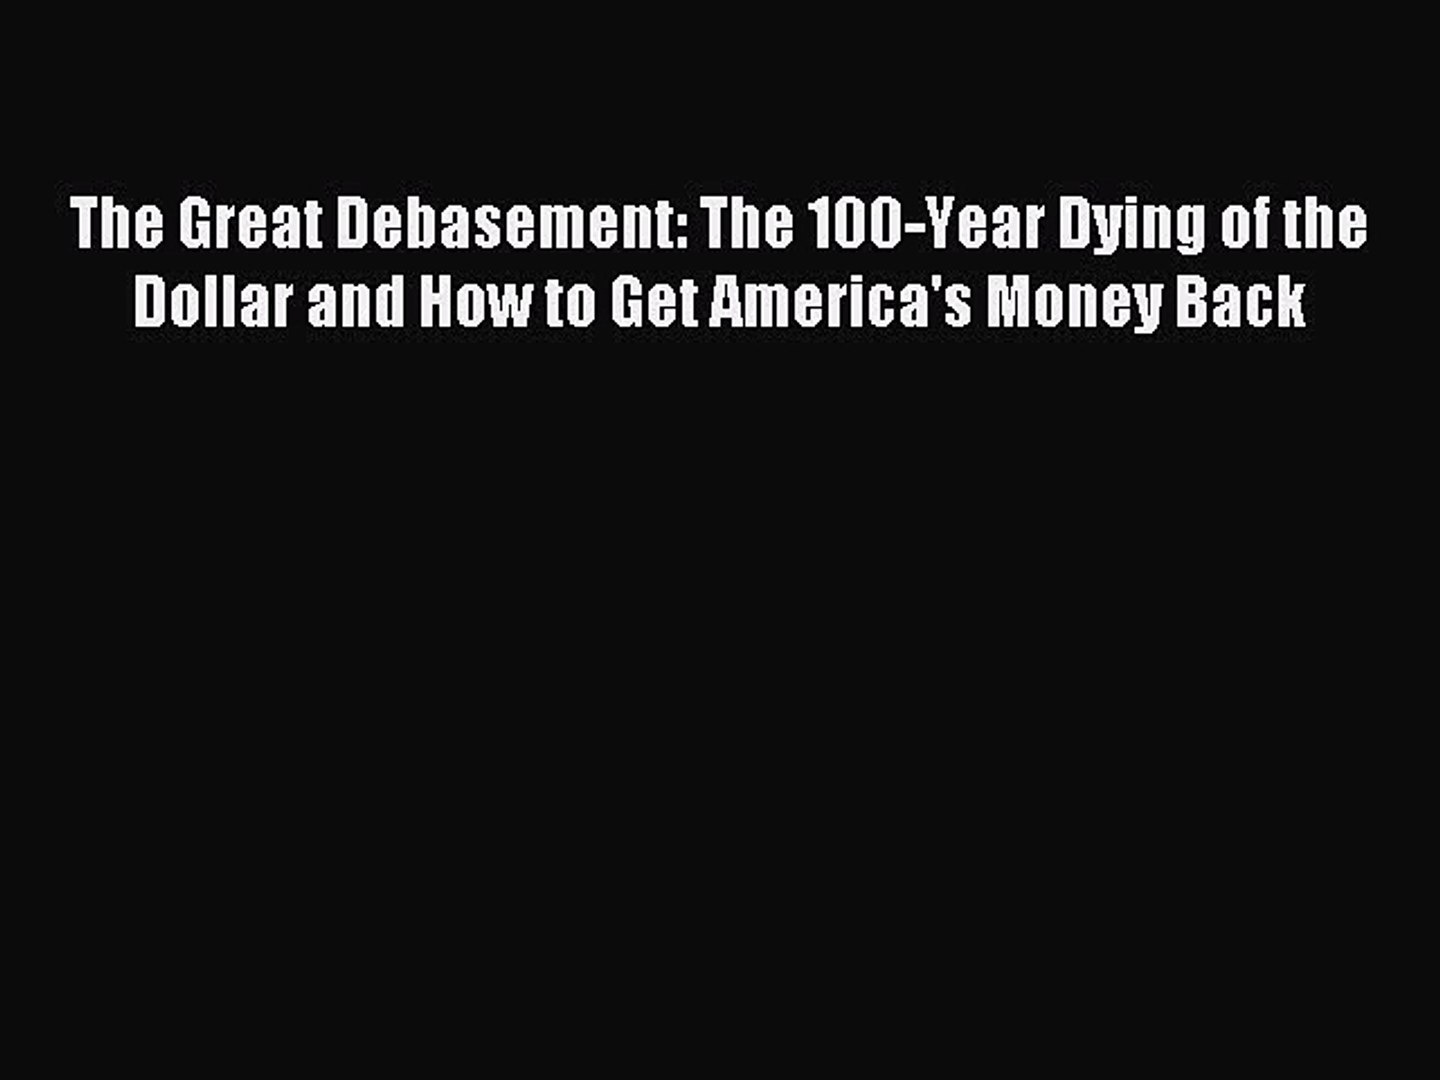 Read The Great Debasement: The 100-Year Dying of the Dollar and How to Get America's Money